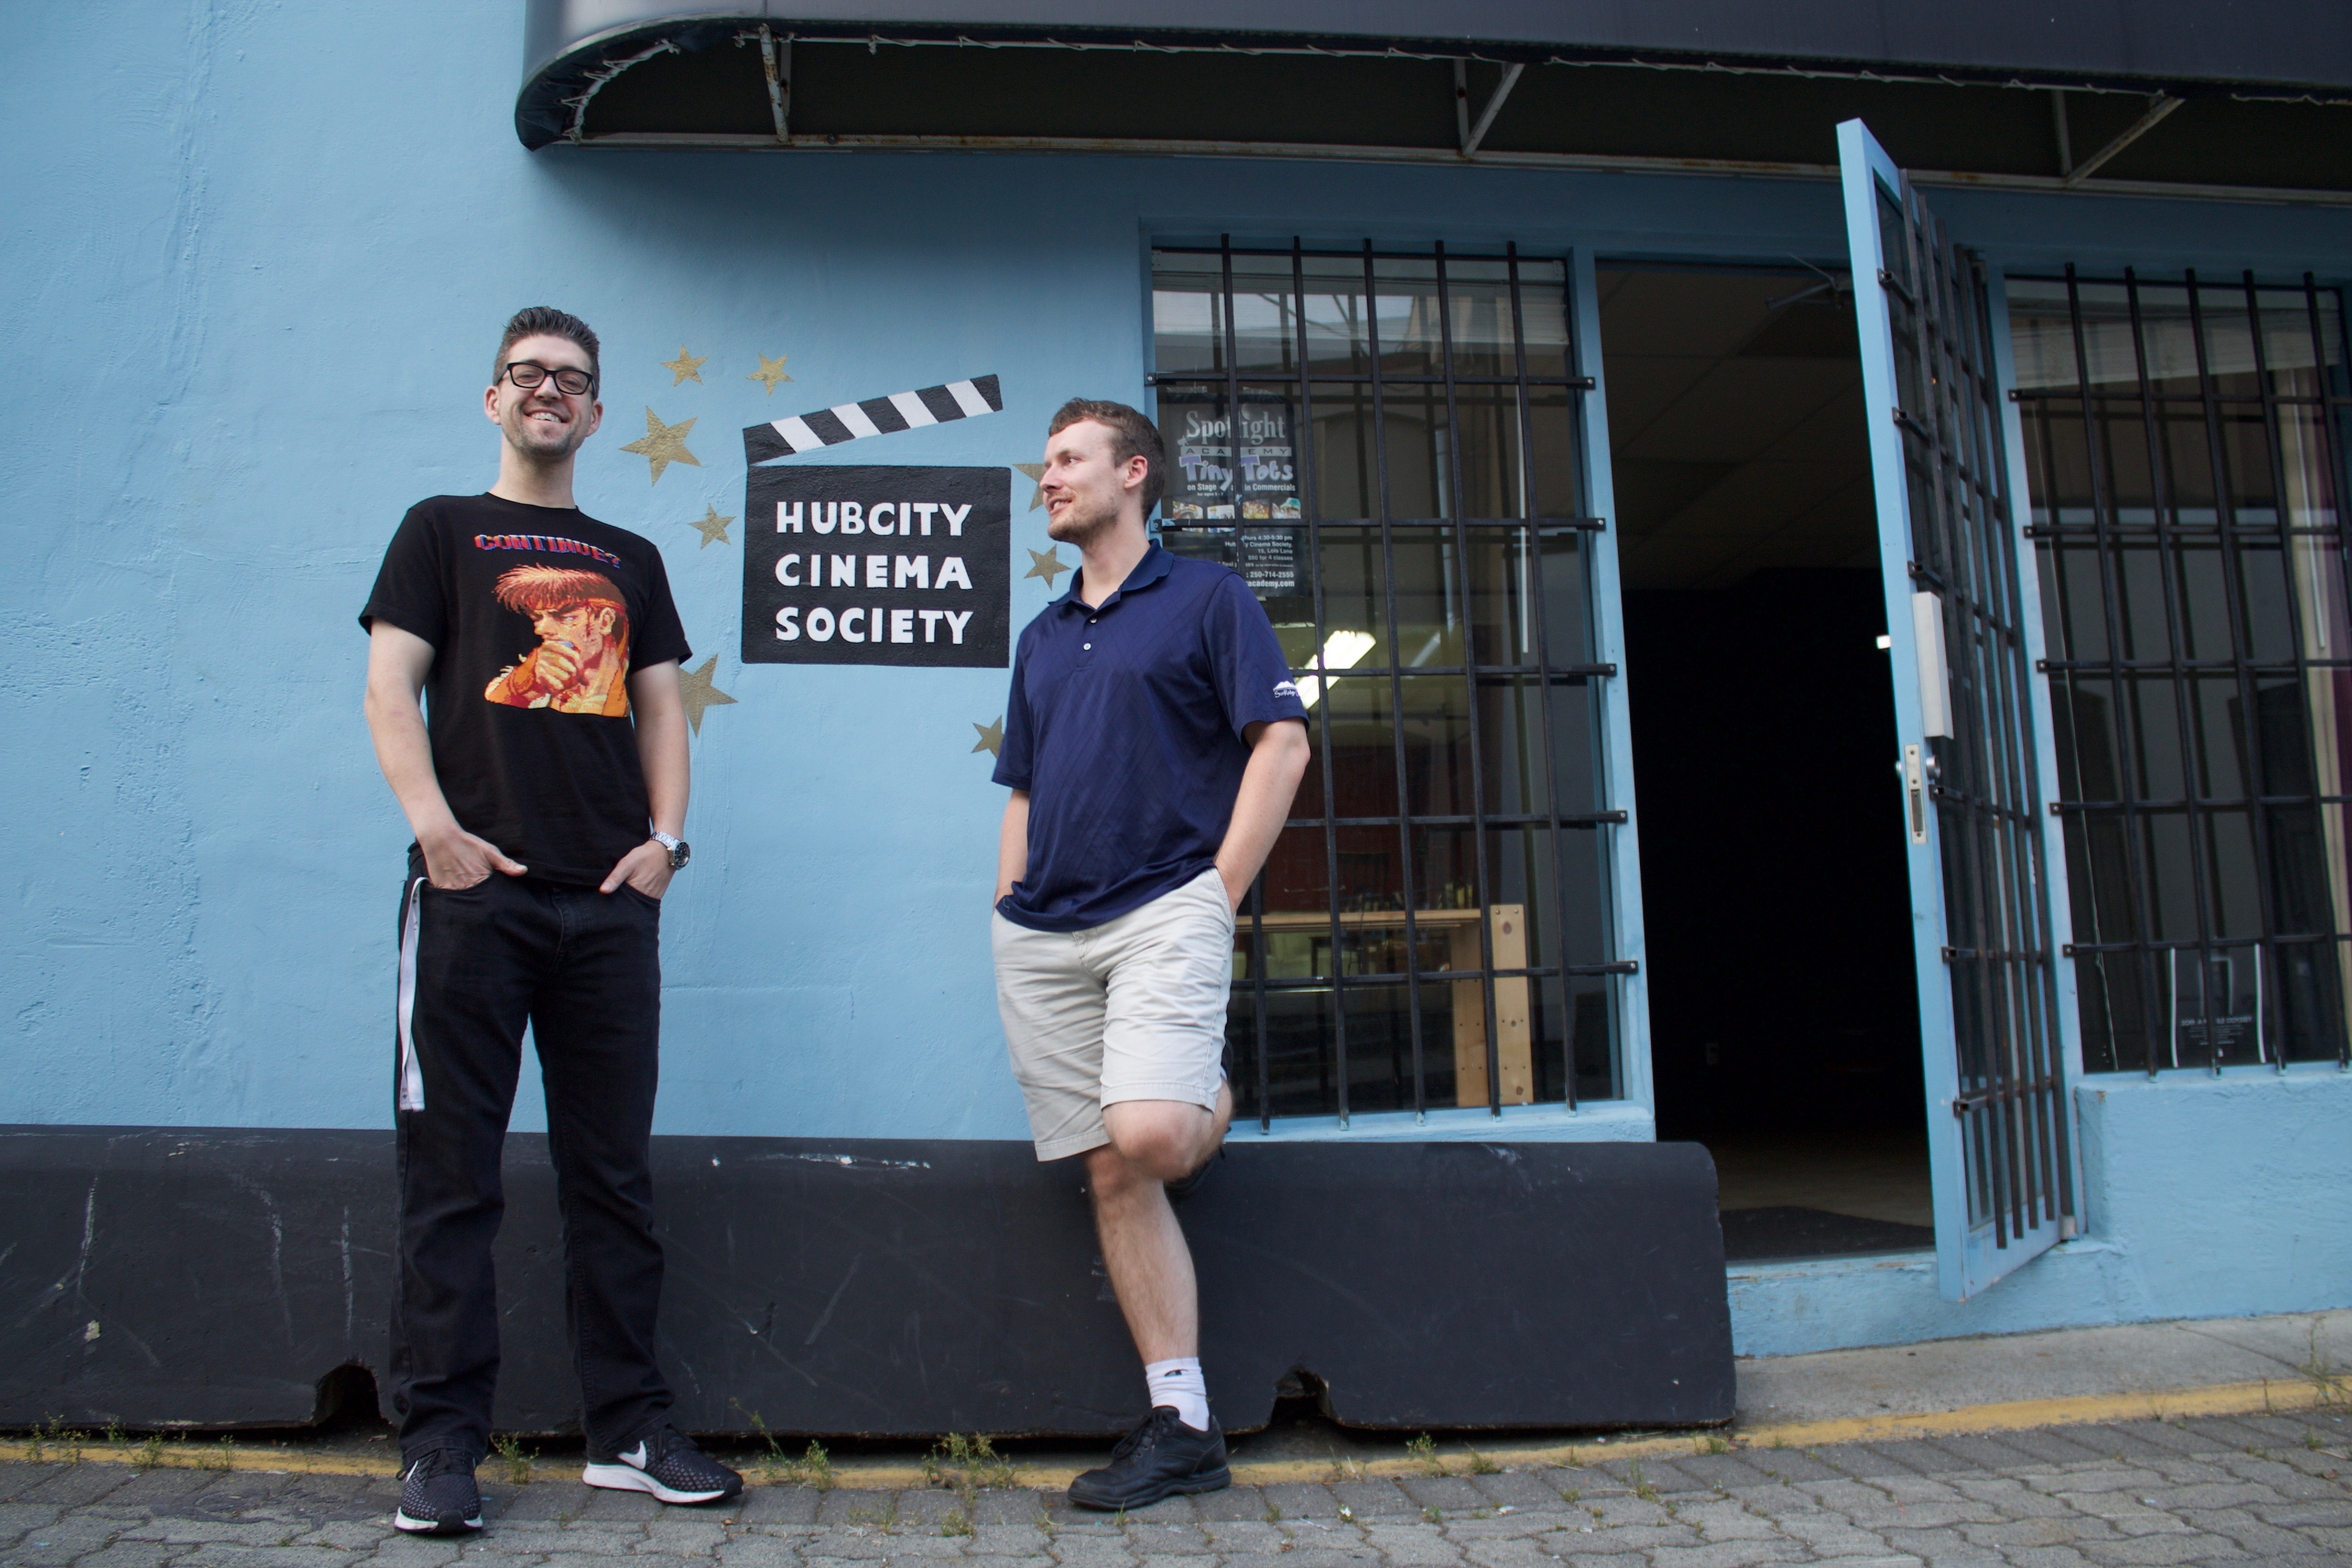 Two men stand a meter apart at the entrance of HCCS's headquarters. The door to society is open while both men entertain each other; the logo of the nonprofit organization is painted on the wall and between both co-founders. The logo is a clapperboard with the name Hub City Cinema Society within it.